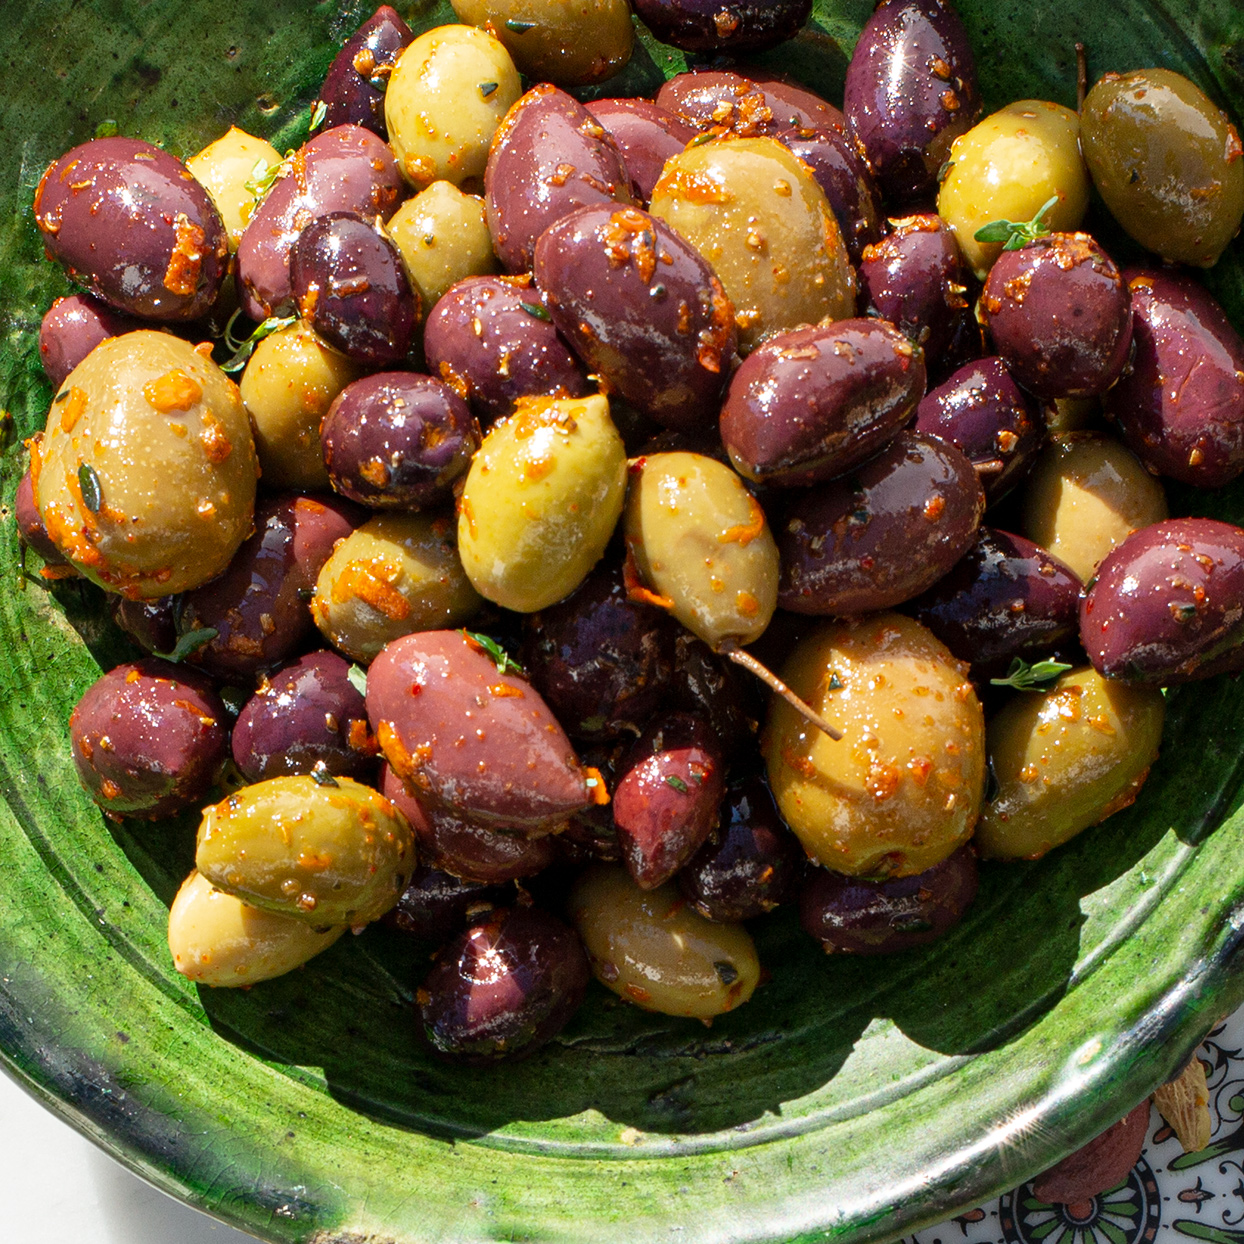 Spicy Olives Trusted Brands